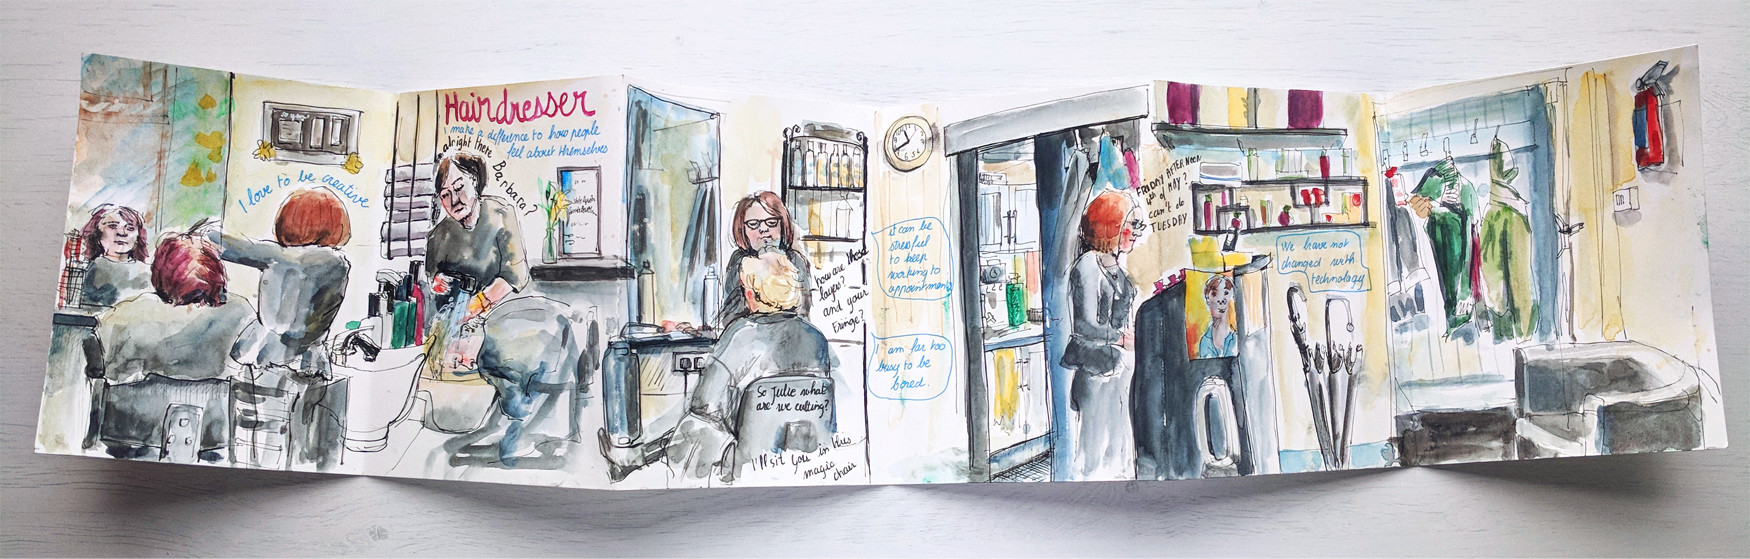 Drawing a day in the life of a hairdresser - reportage illustration by Sophie Peanut